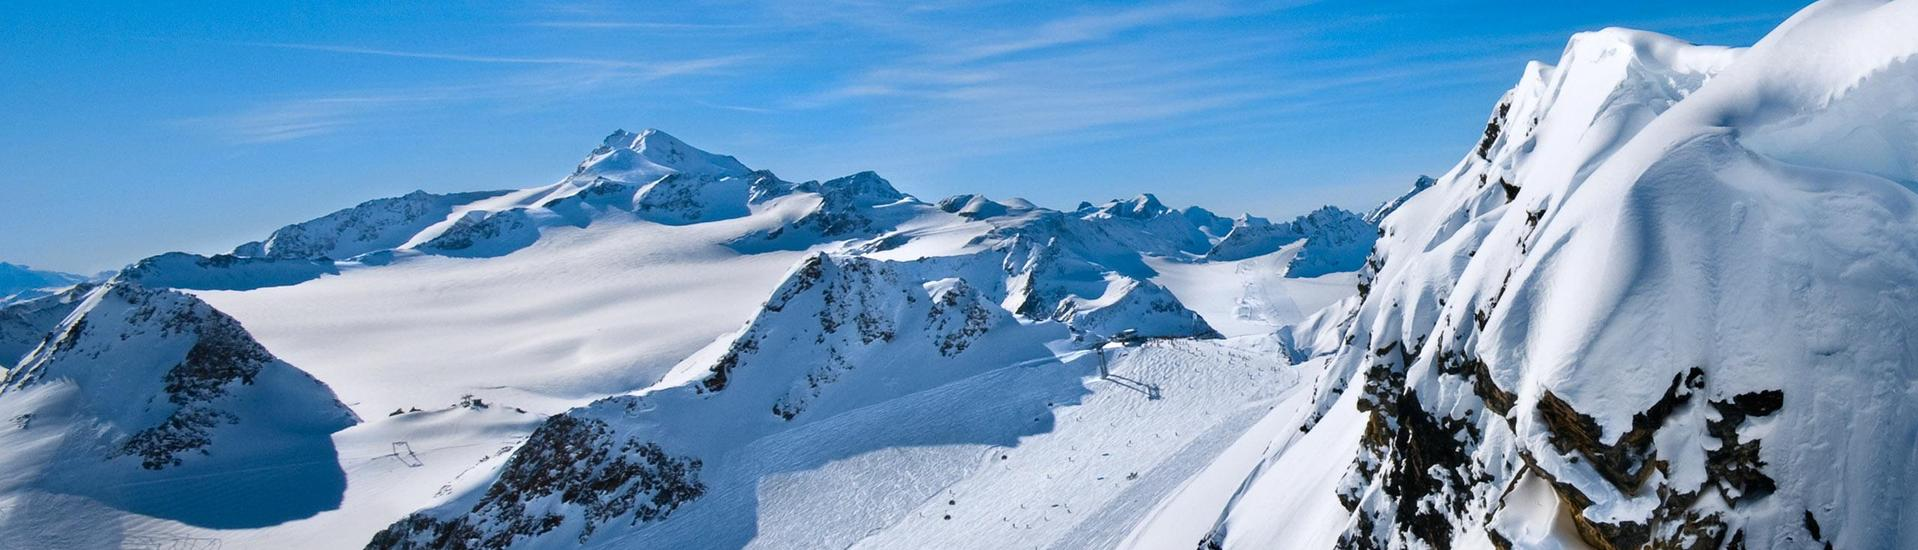 A view of a snowy mountain top in the ski resort of Les Orres, where ski schools gather to start their ski lessons.